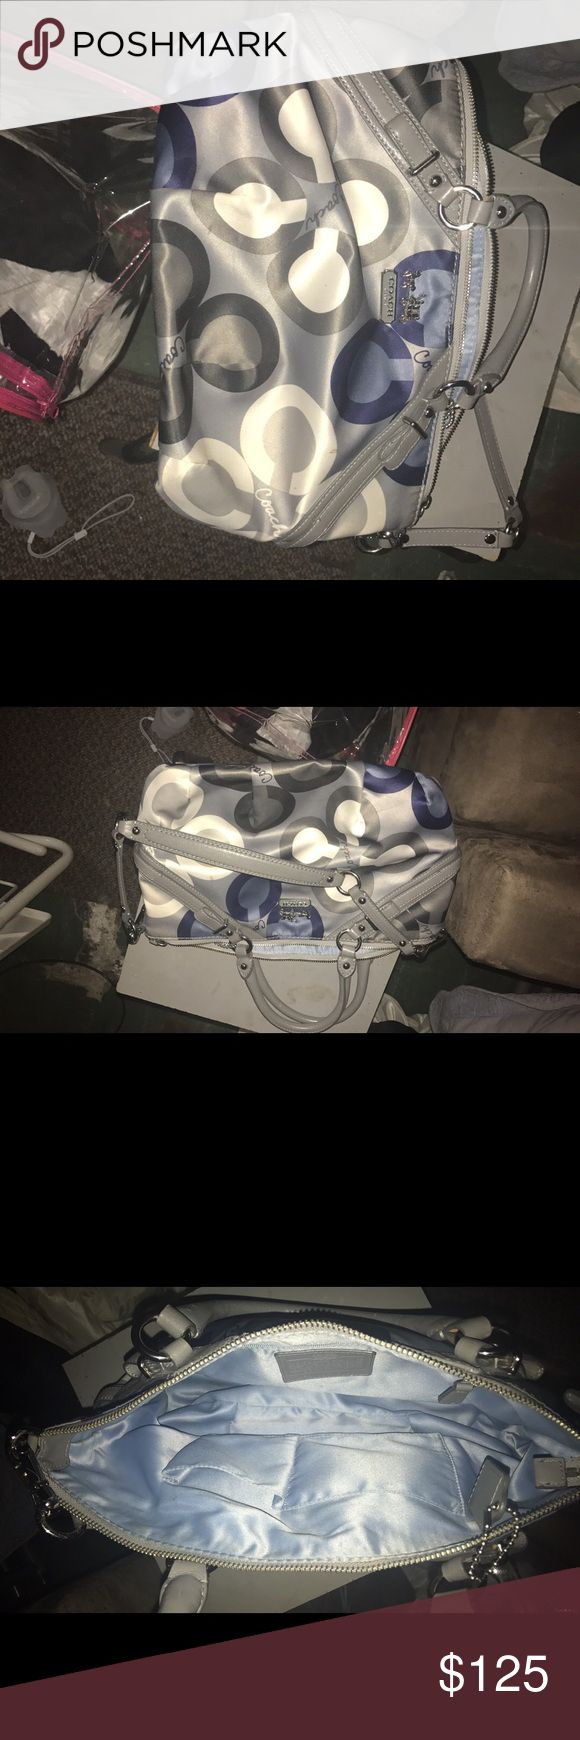 Coach tote Blue gray and white tote used once to small for all my stuff ! Best offer Coach Bags Totes